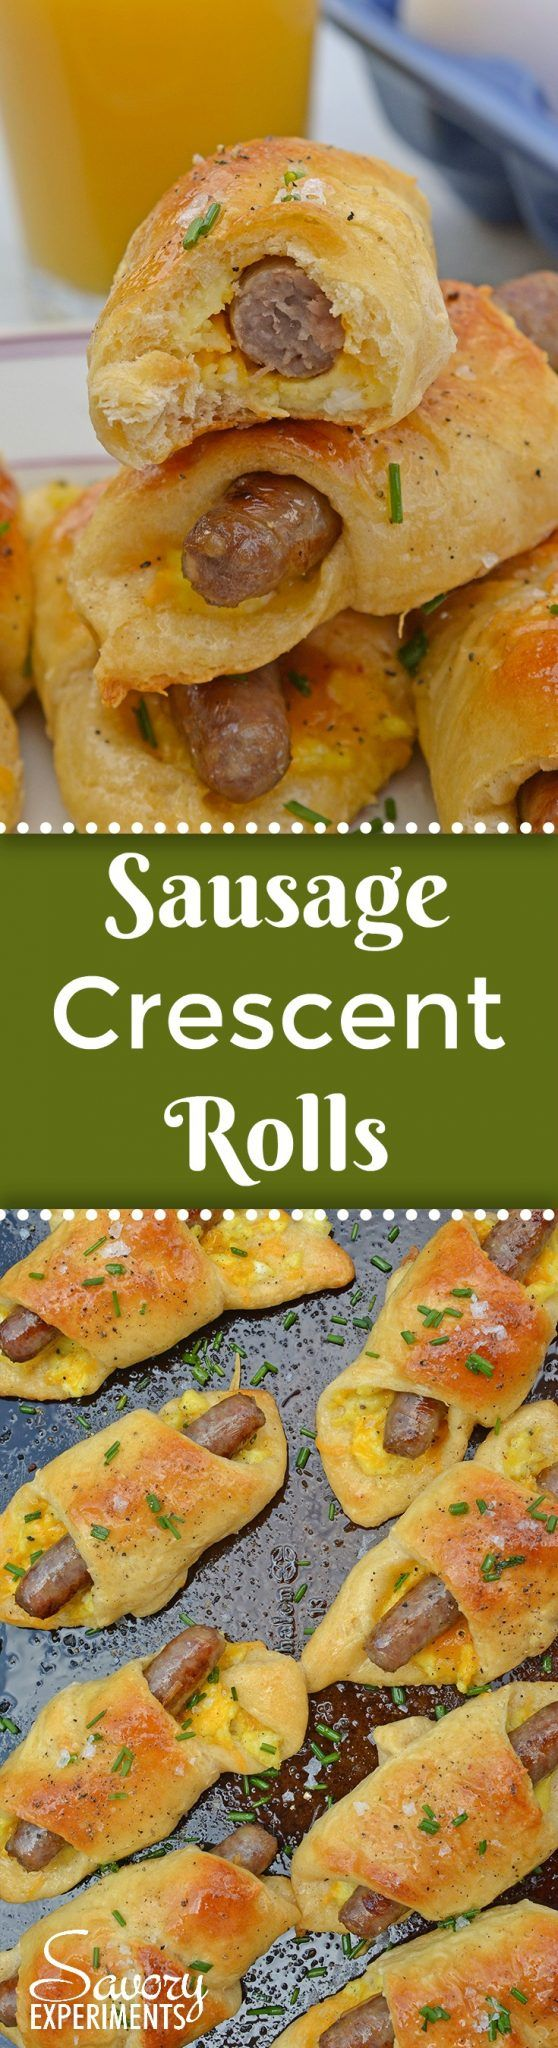 Look no further for a quick breakfast idea! Sausage Crescent Rolls are an easy breakfast idea packed with protein. A breakfast of champions! AD #easybrakfastideas #quickbreakfast www.savoryexperiments.com via @savorycooking